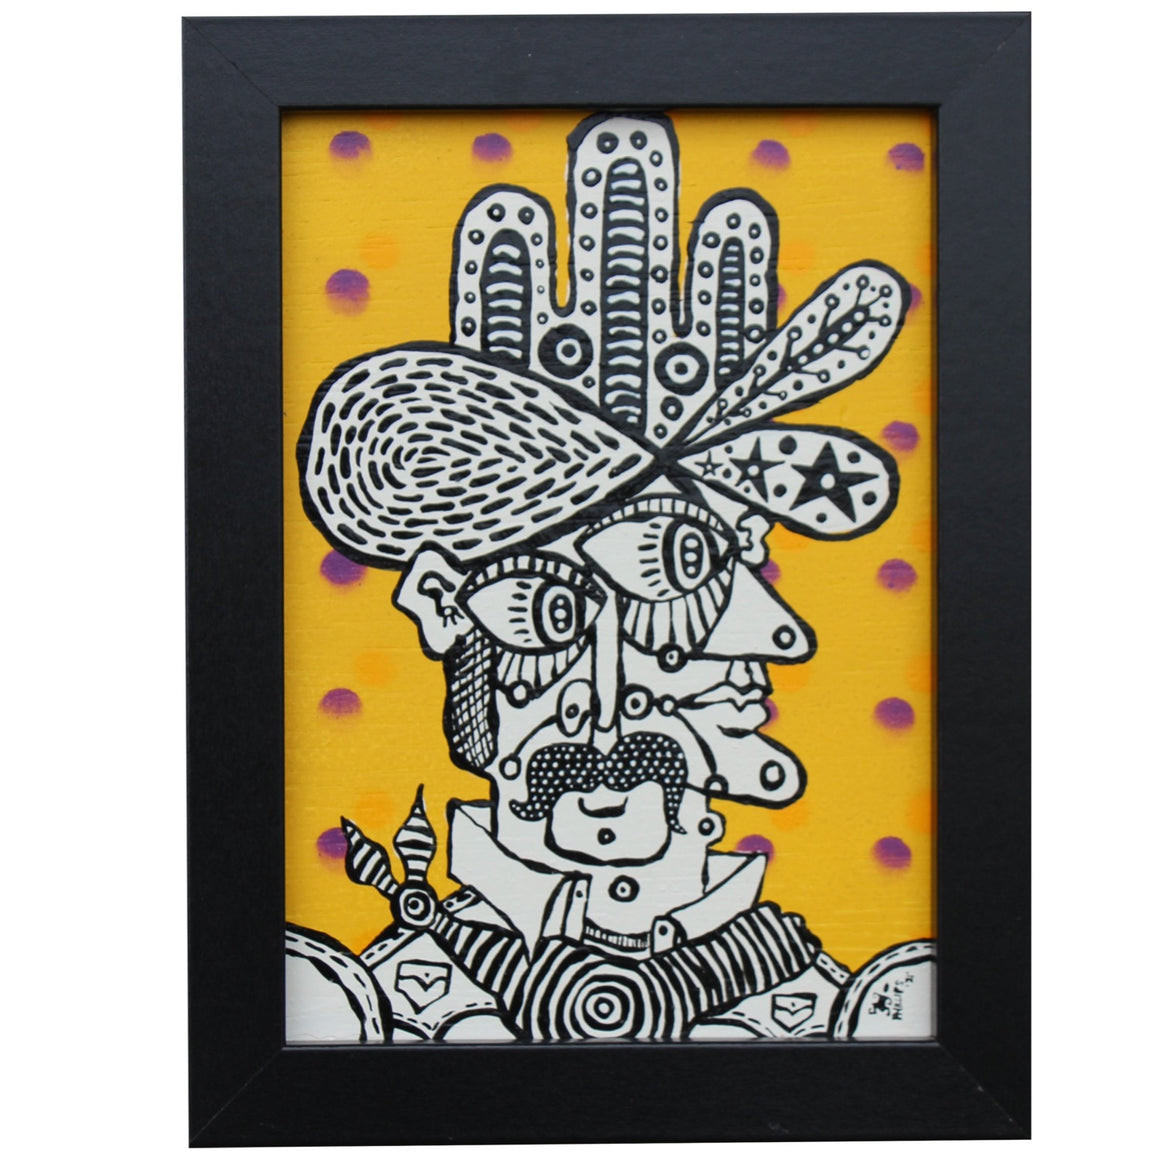 Mr. Yellow - Brian Phillips - 6x8""